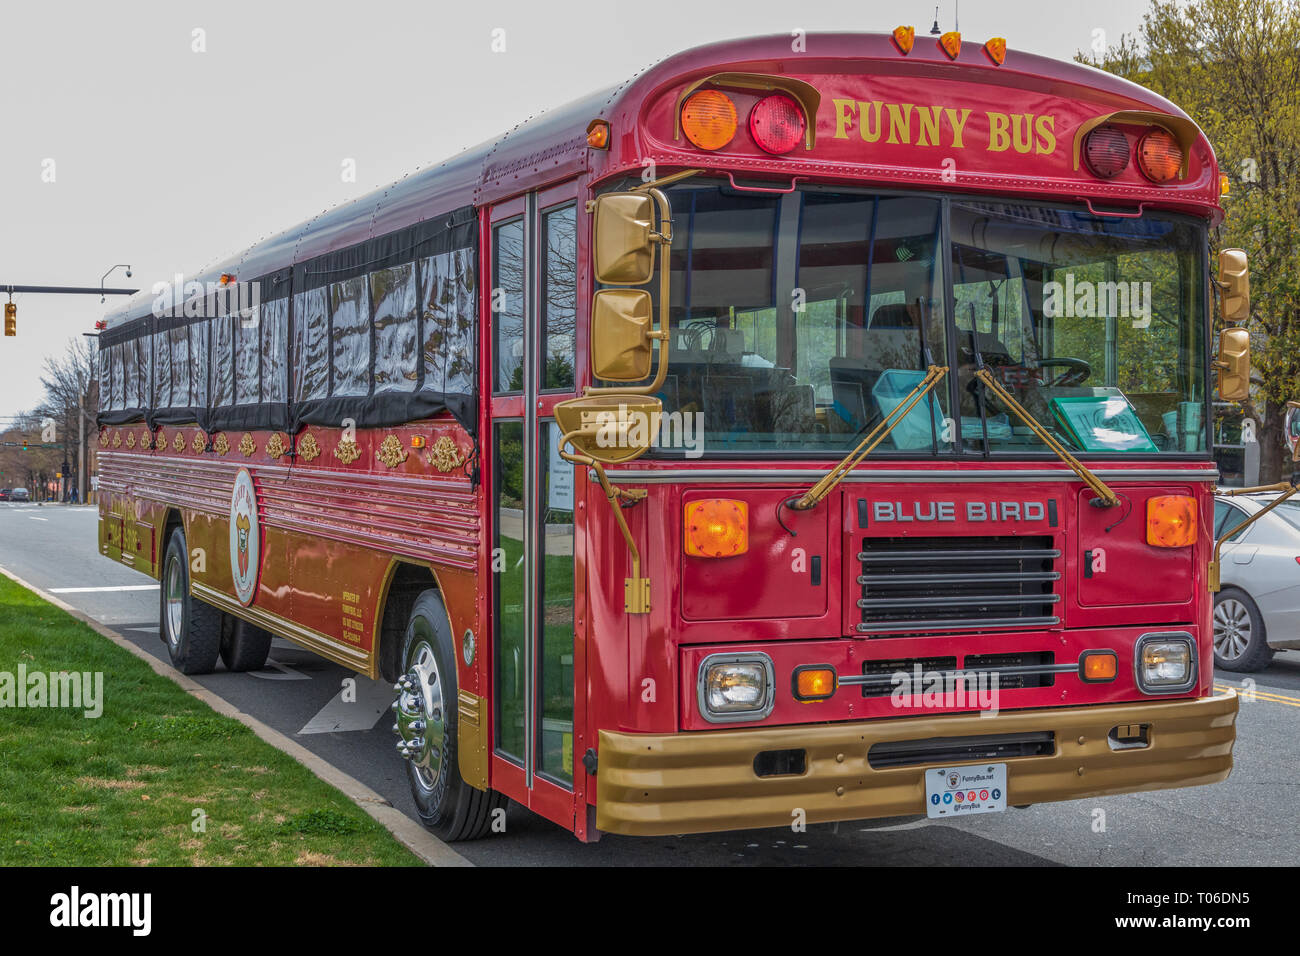 CHARLOTTE, NC, USA-3/16/19: A city tour bus, combined with an onboard comedy show, stands idle at First Ward Park. - Stock Image